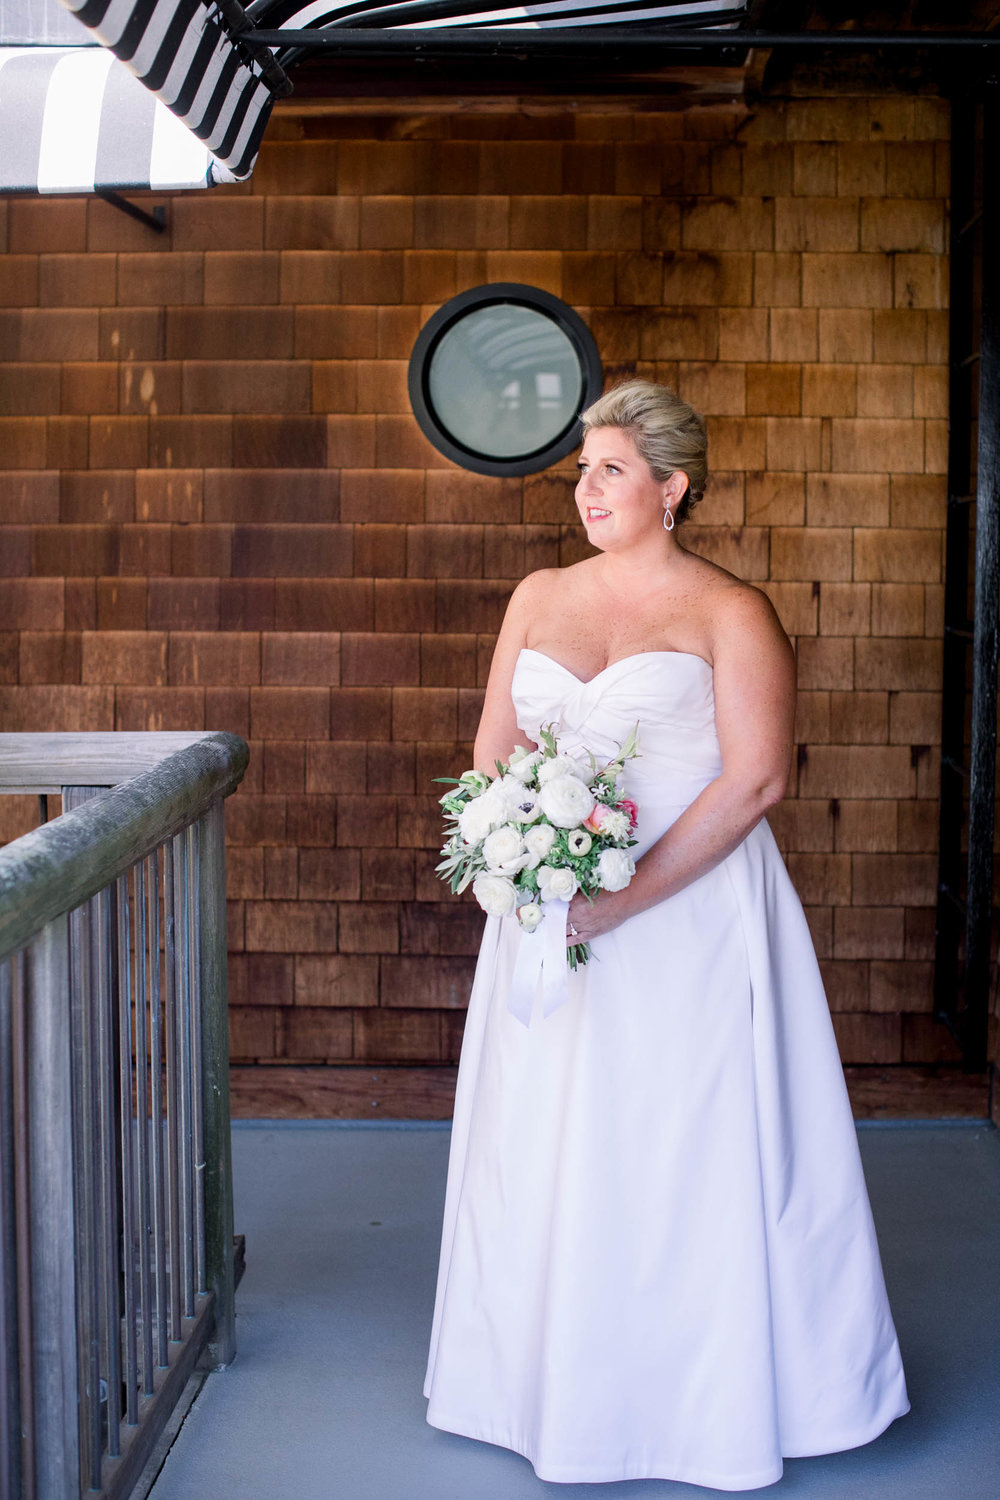 092218ER125_Sausalito Yacht Club Wedding_Buena Lane Photography.jpg